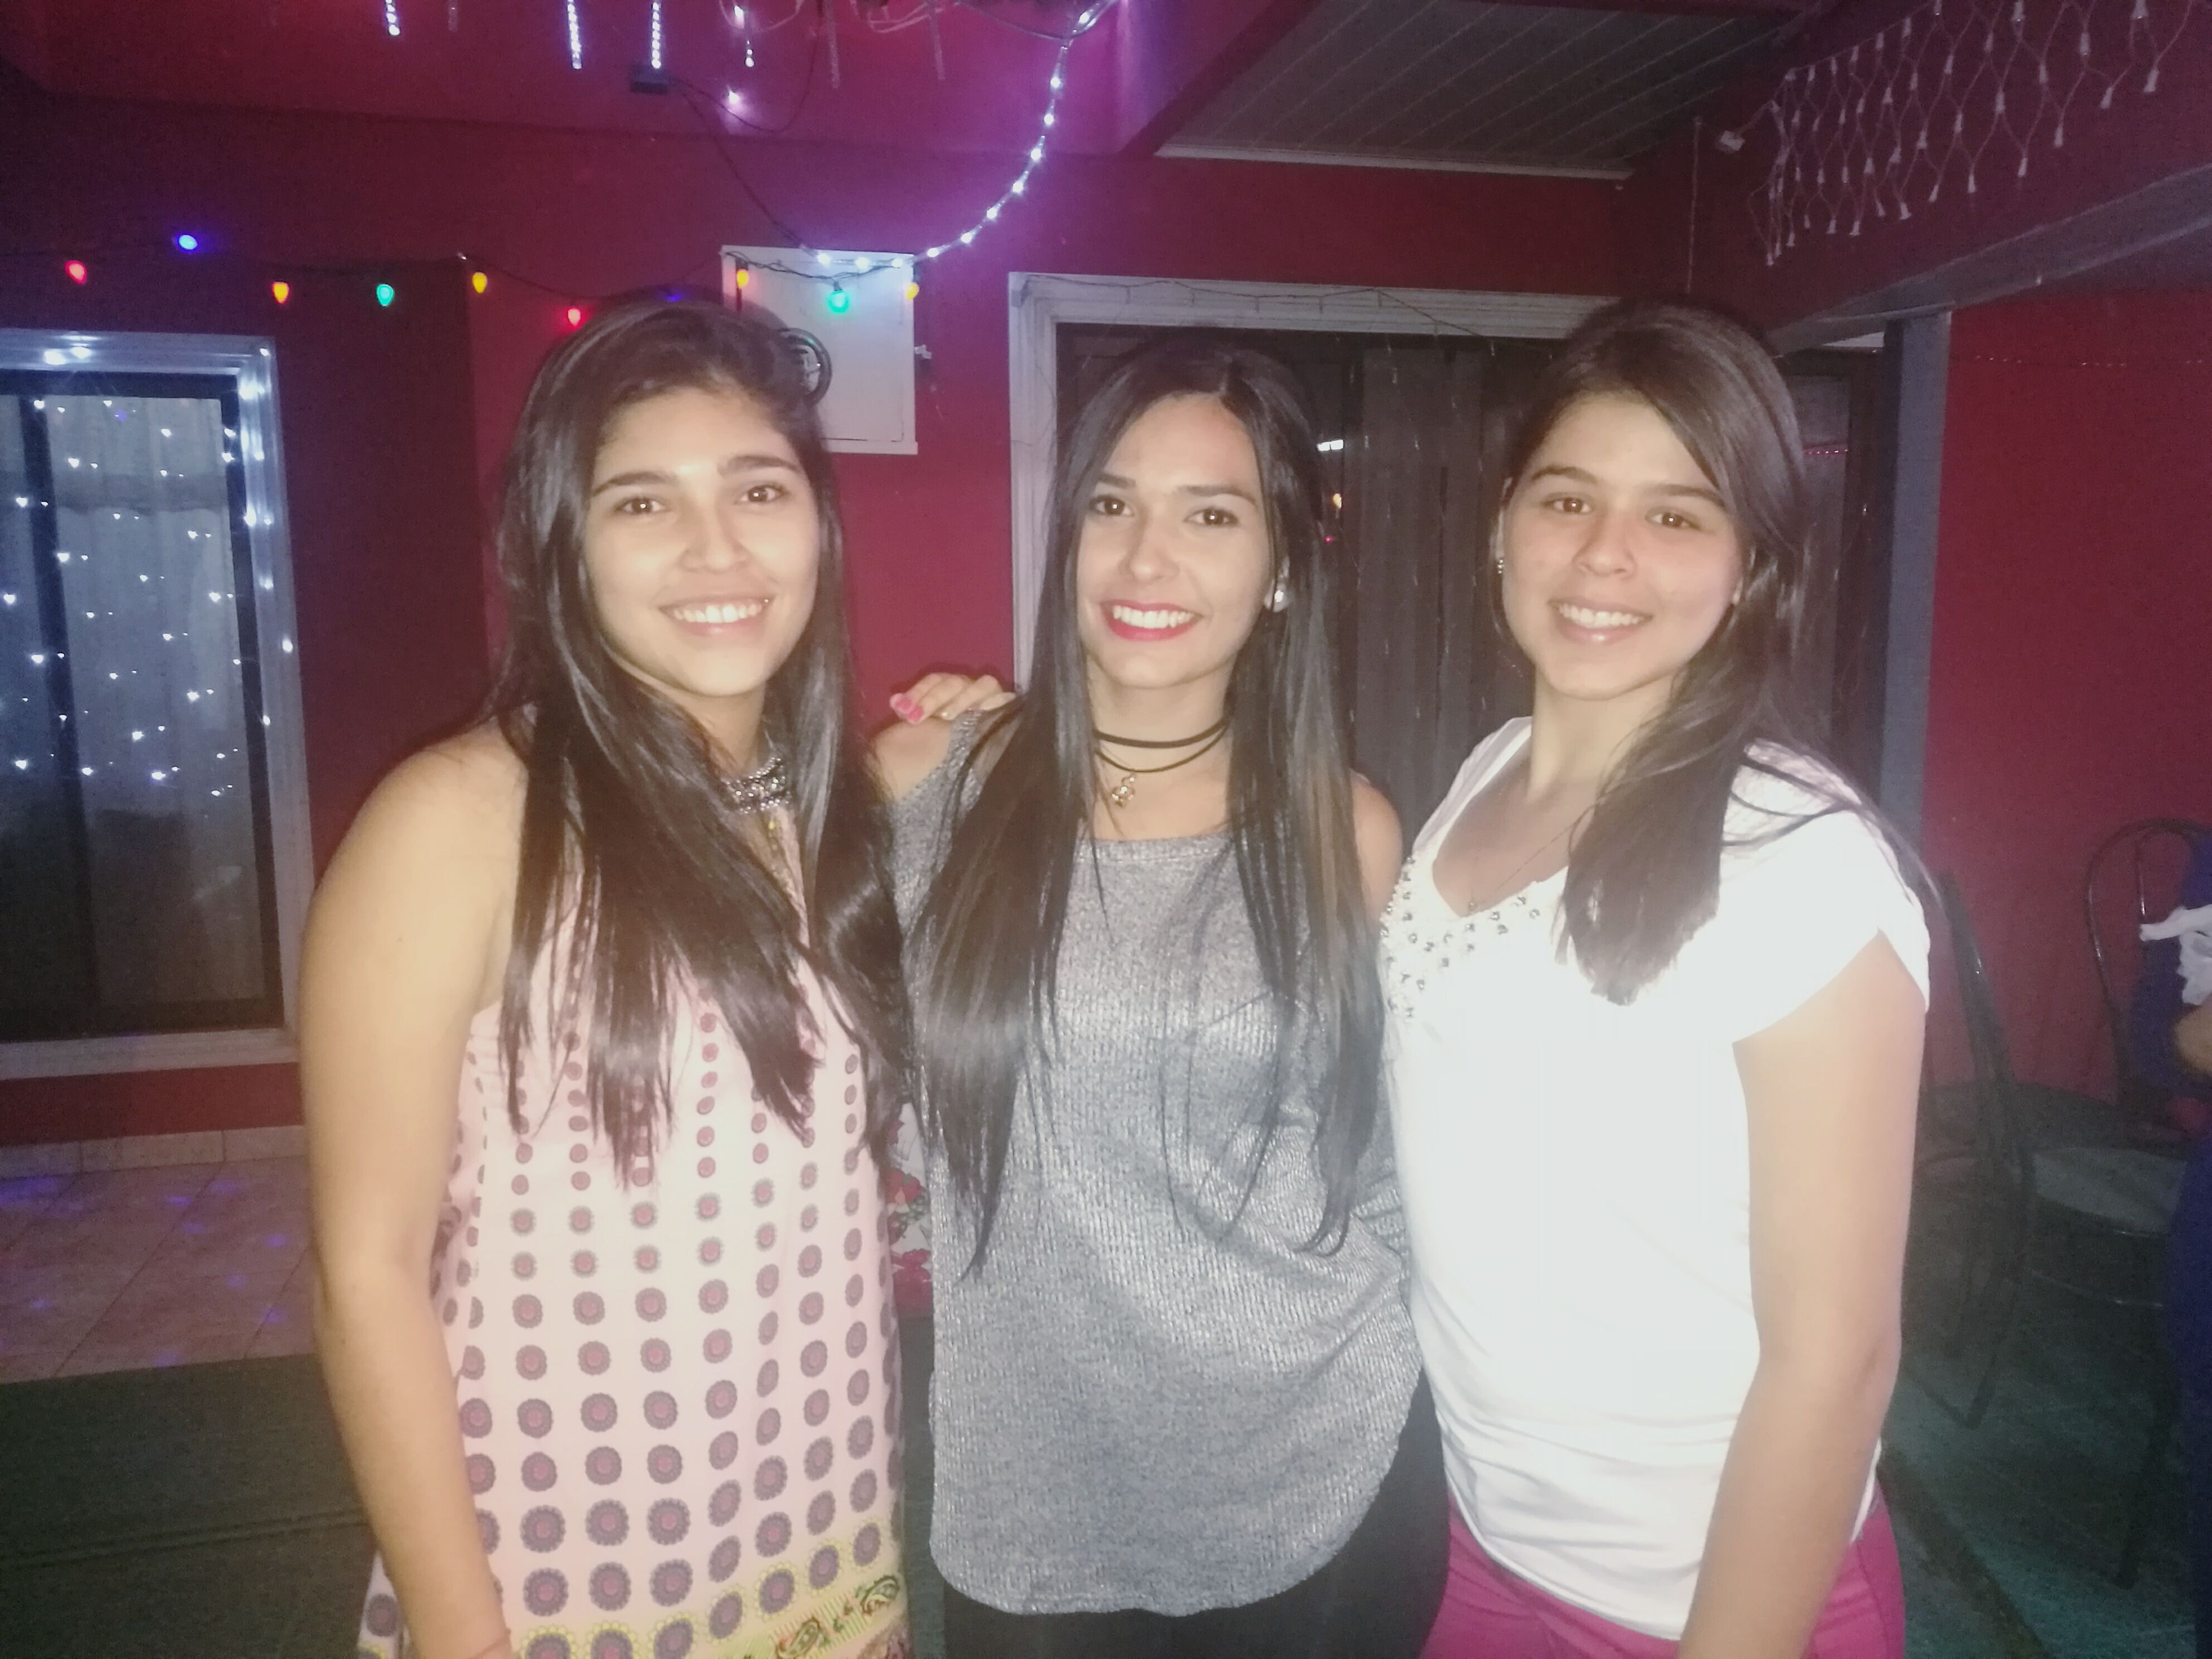 friendship, looking at camera, portrait, nightclub, fun, waist up, smiling, nightlife, enjoyment, party - social event, dancing, happiness, night, togetherness, front view, cheerful, indoors, group of people, people, only women, ladies' night, beautiful woman, adults only, happy hour, adult